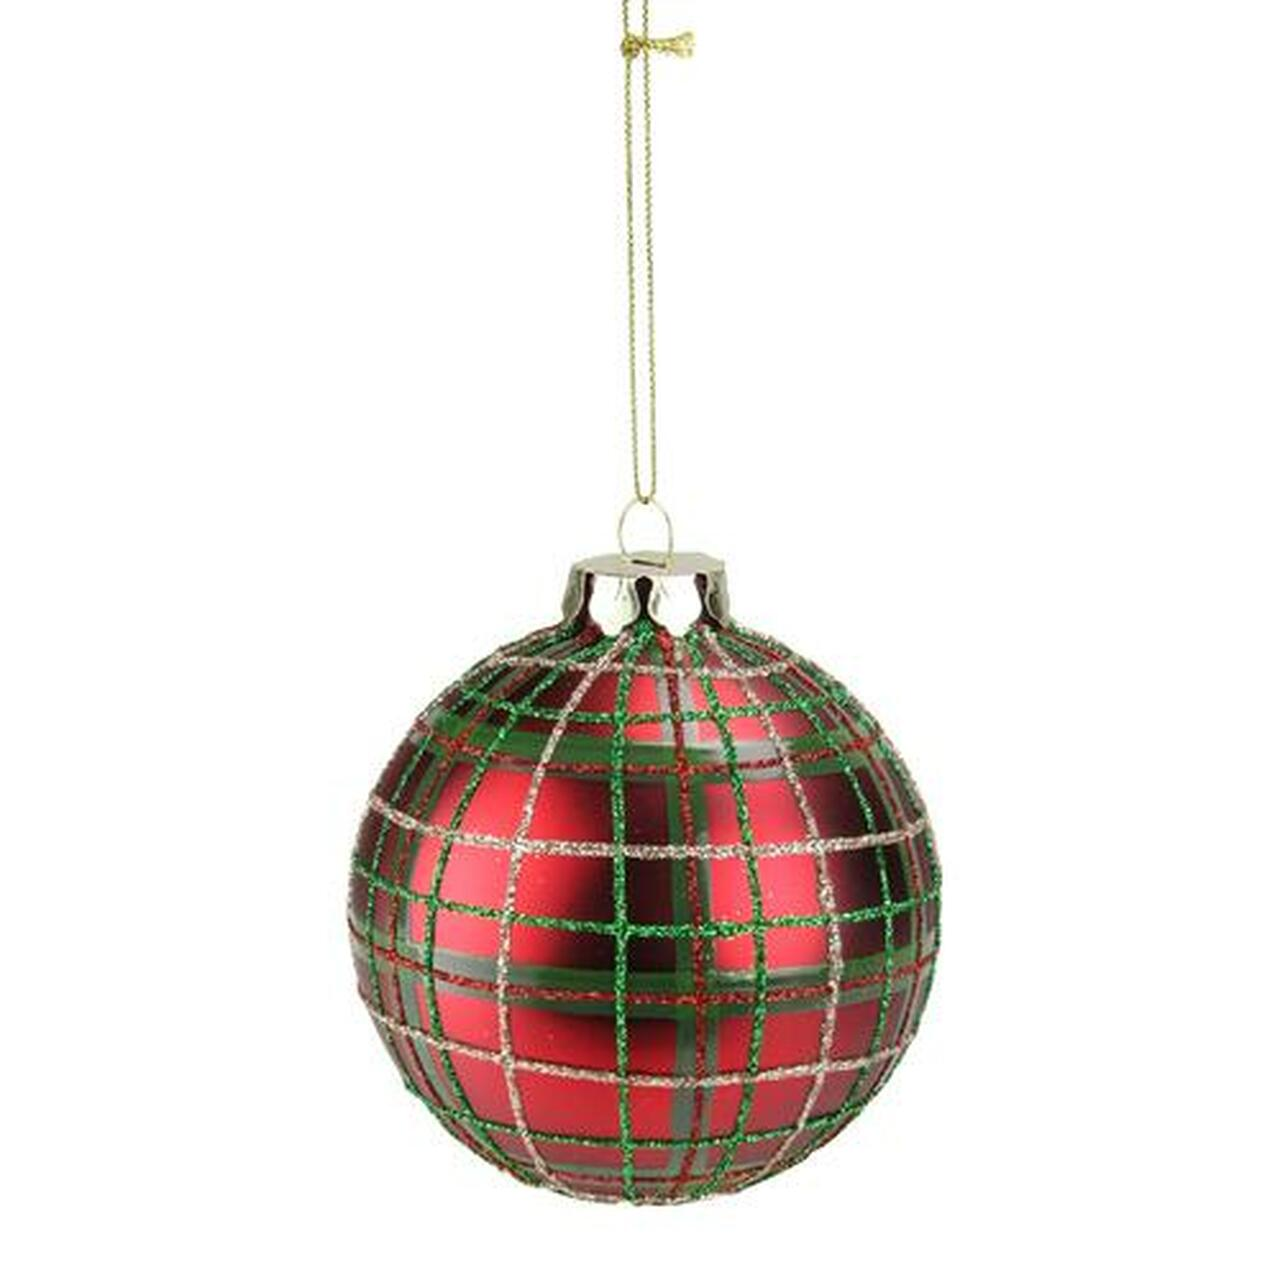 set of 2 red and green plaid glass ball christmas ornaments 325 80mm 32637404 - Plaid Christmas Ornaments